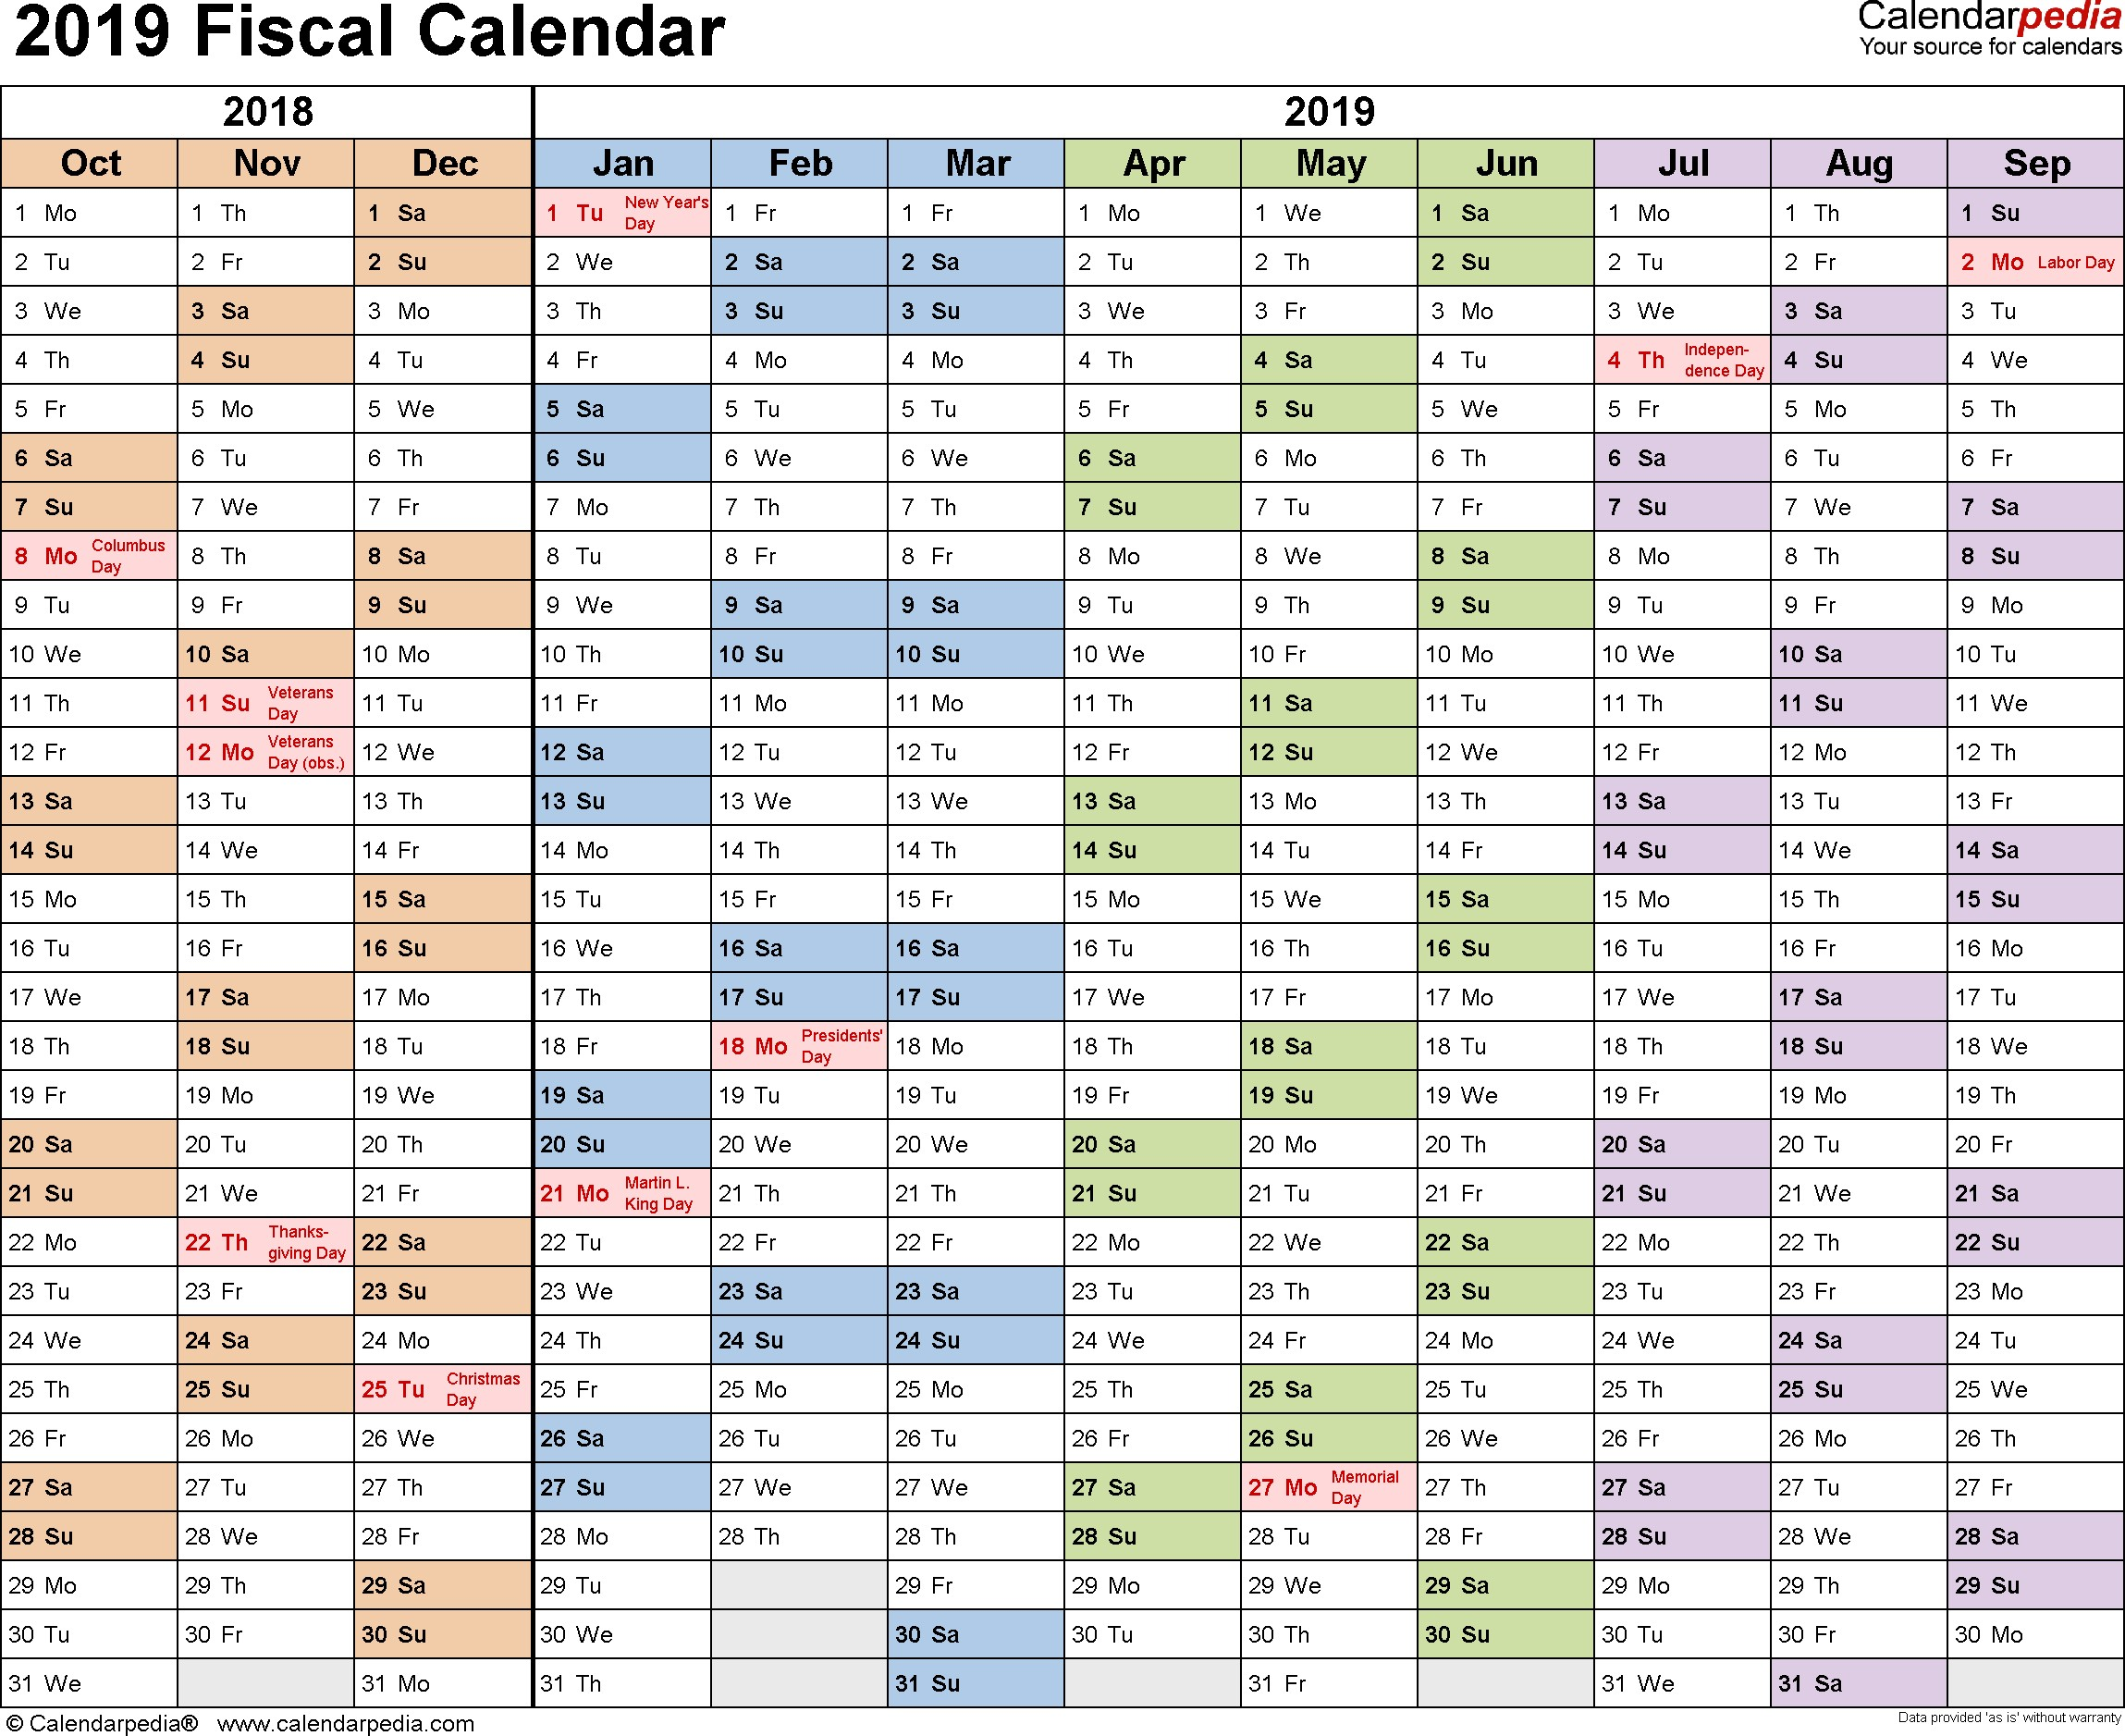 March Calendar Starting Monday Recientes Fiscal Calendars 2019 as Free Printable Word Templates Of March Calendar Starting Monday Recientes Next Year Calendar 2018